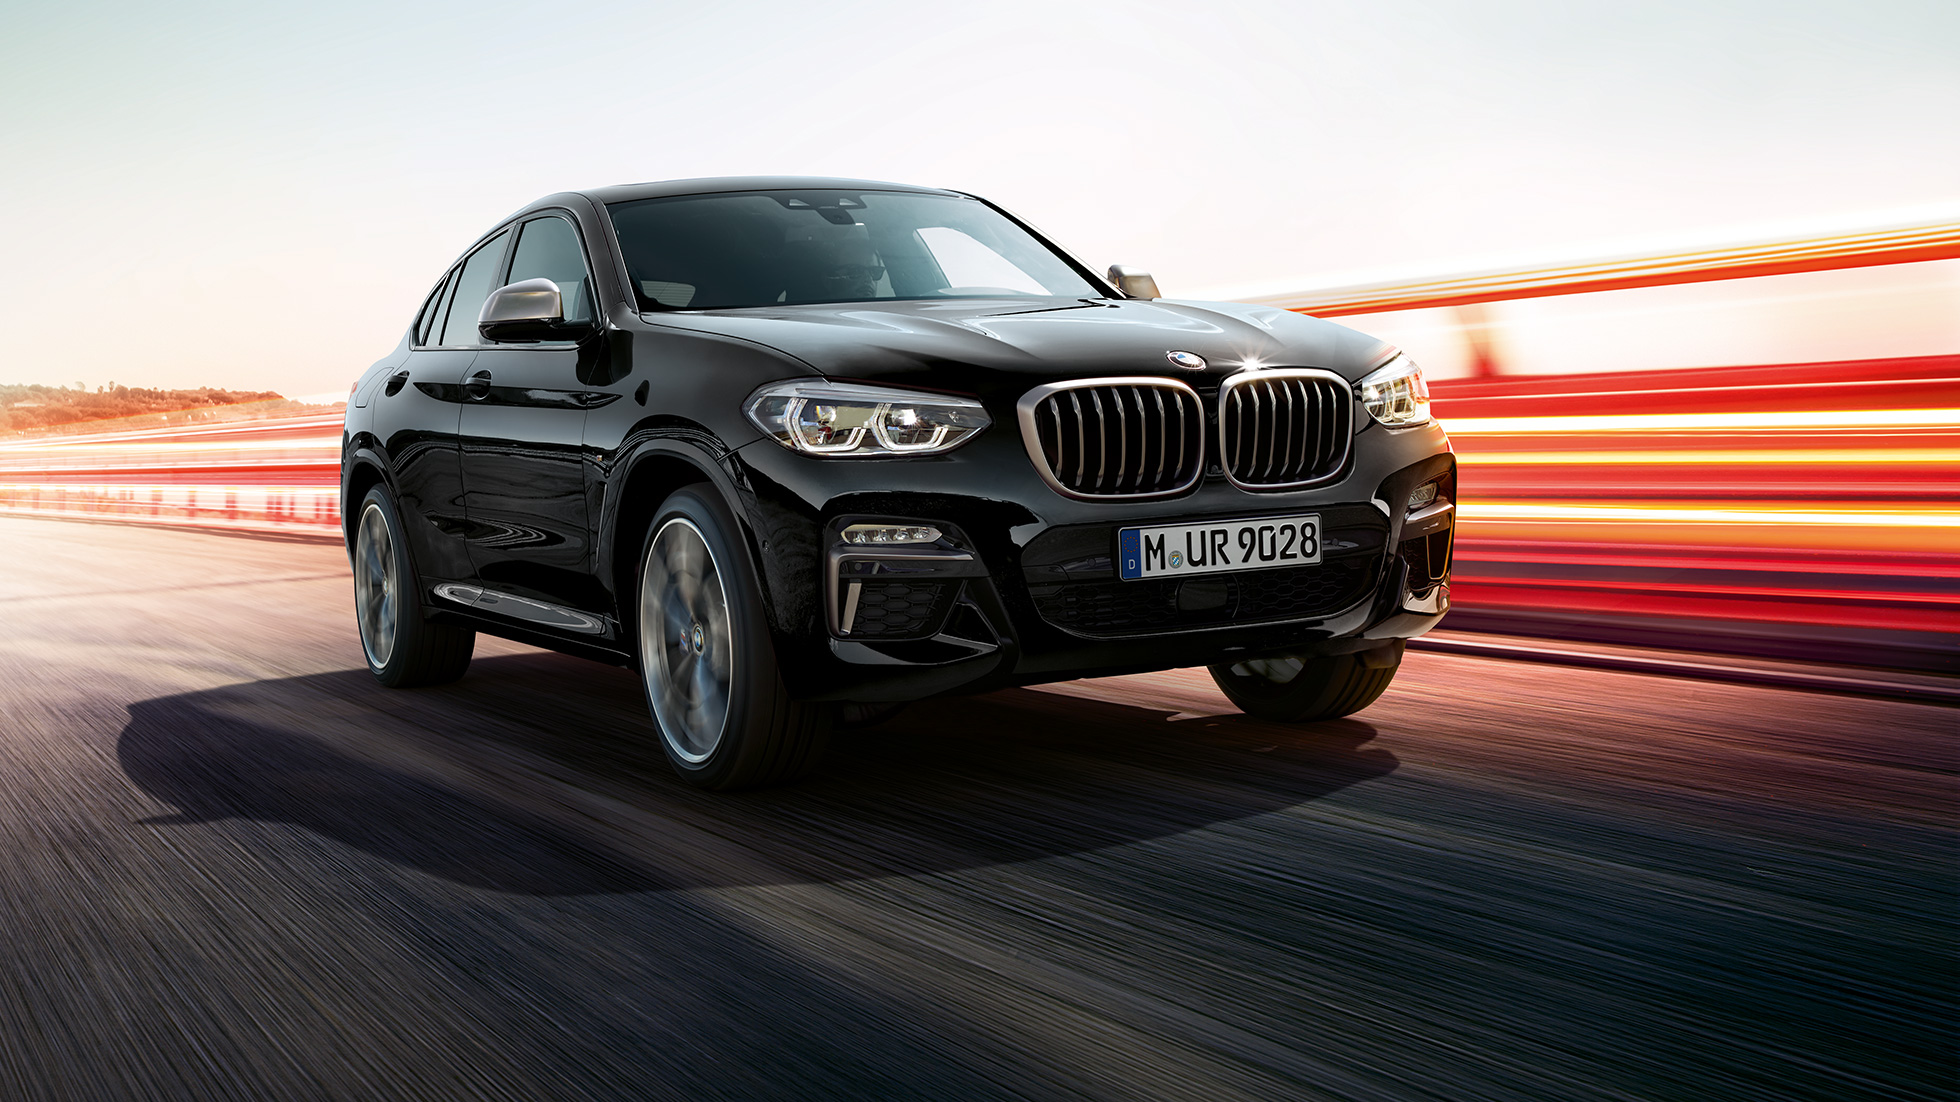 BMW X4 M40i and BMW X4 M40d in Black Sapphire metallic, exterior, three-quarter front view, left side with light strips.